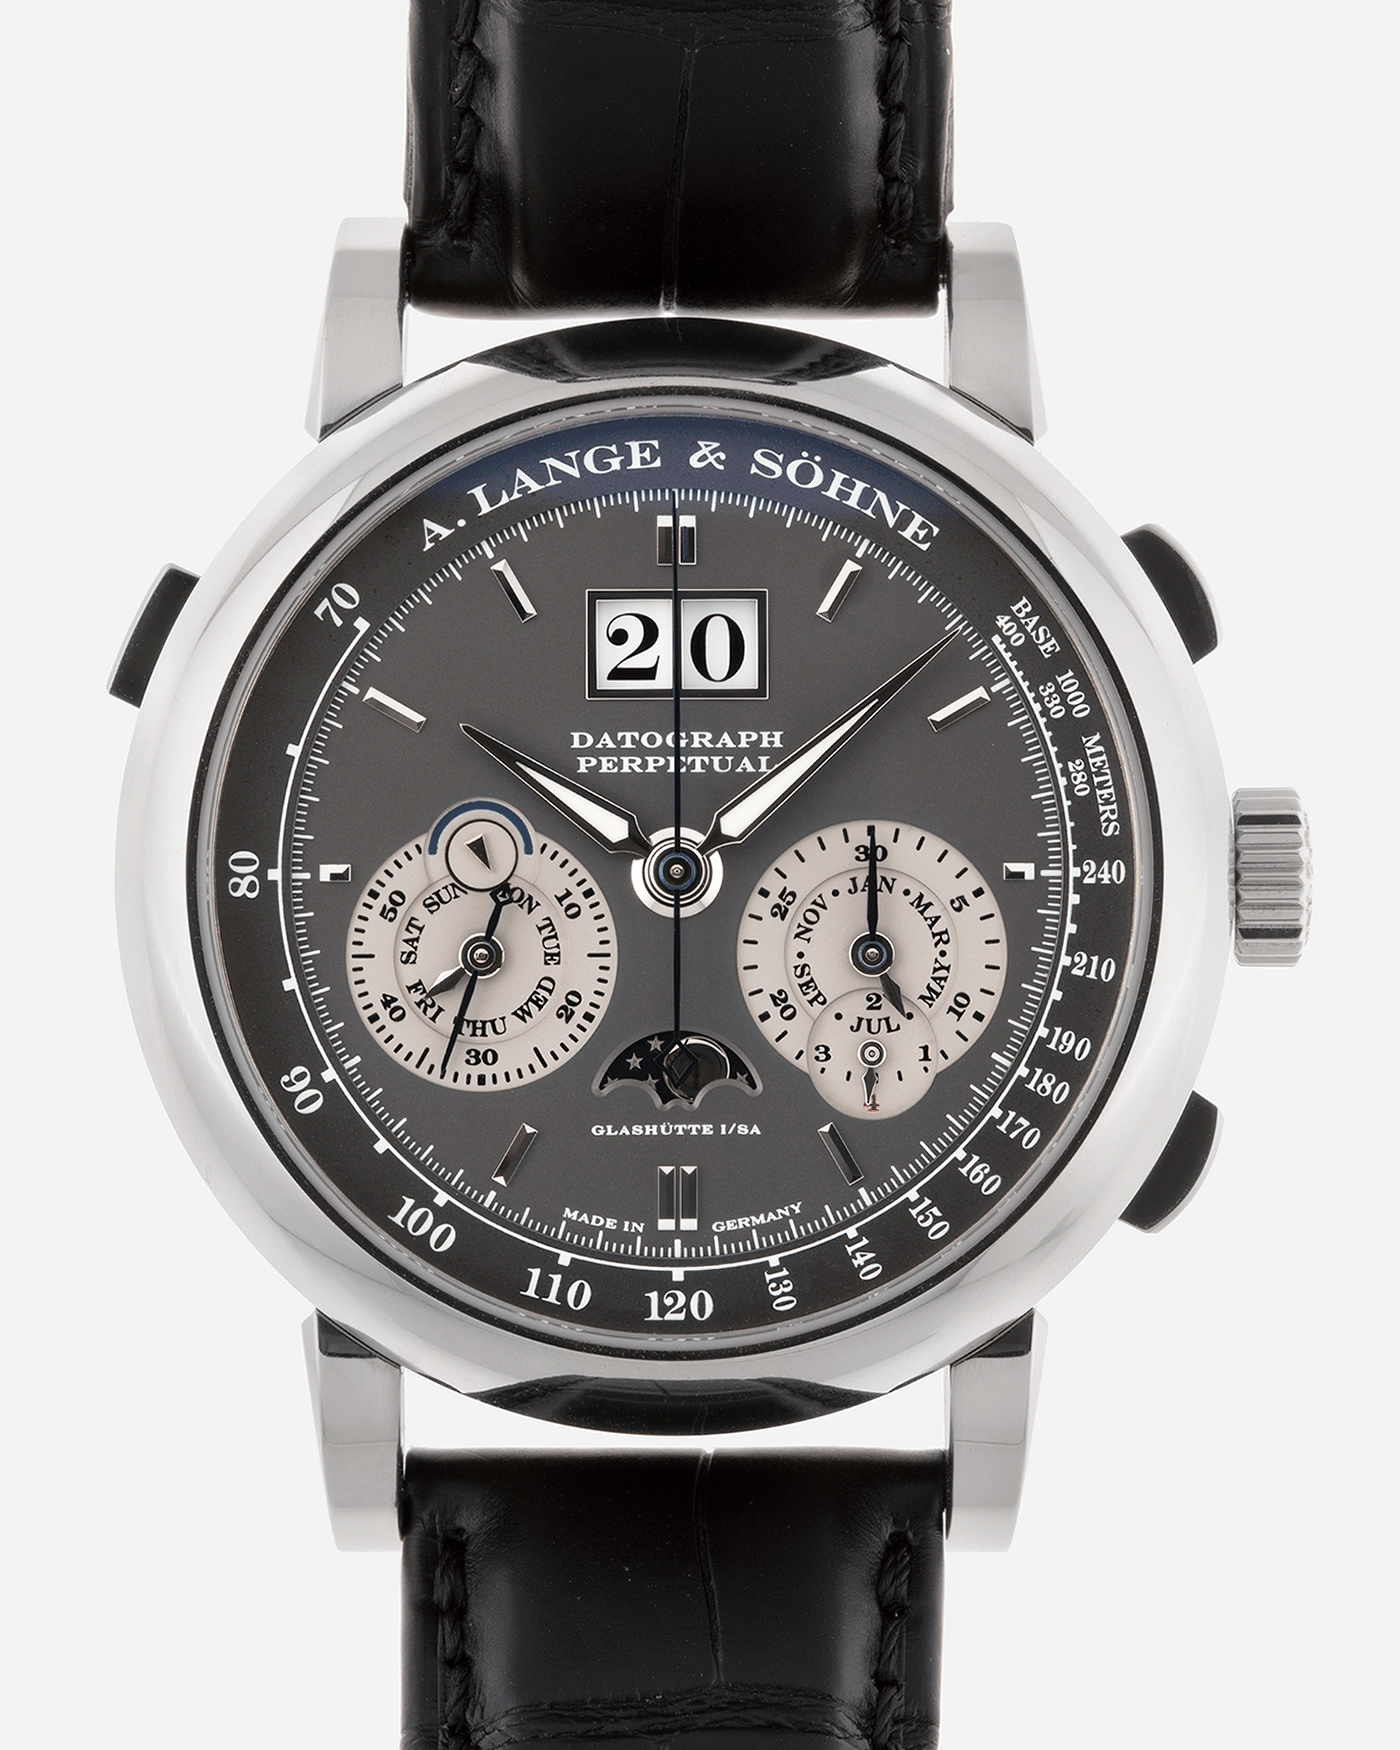 A. Lange & Sohne Datograph Perpetual Grey